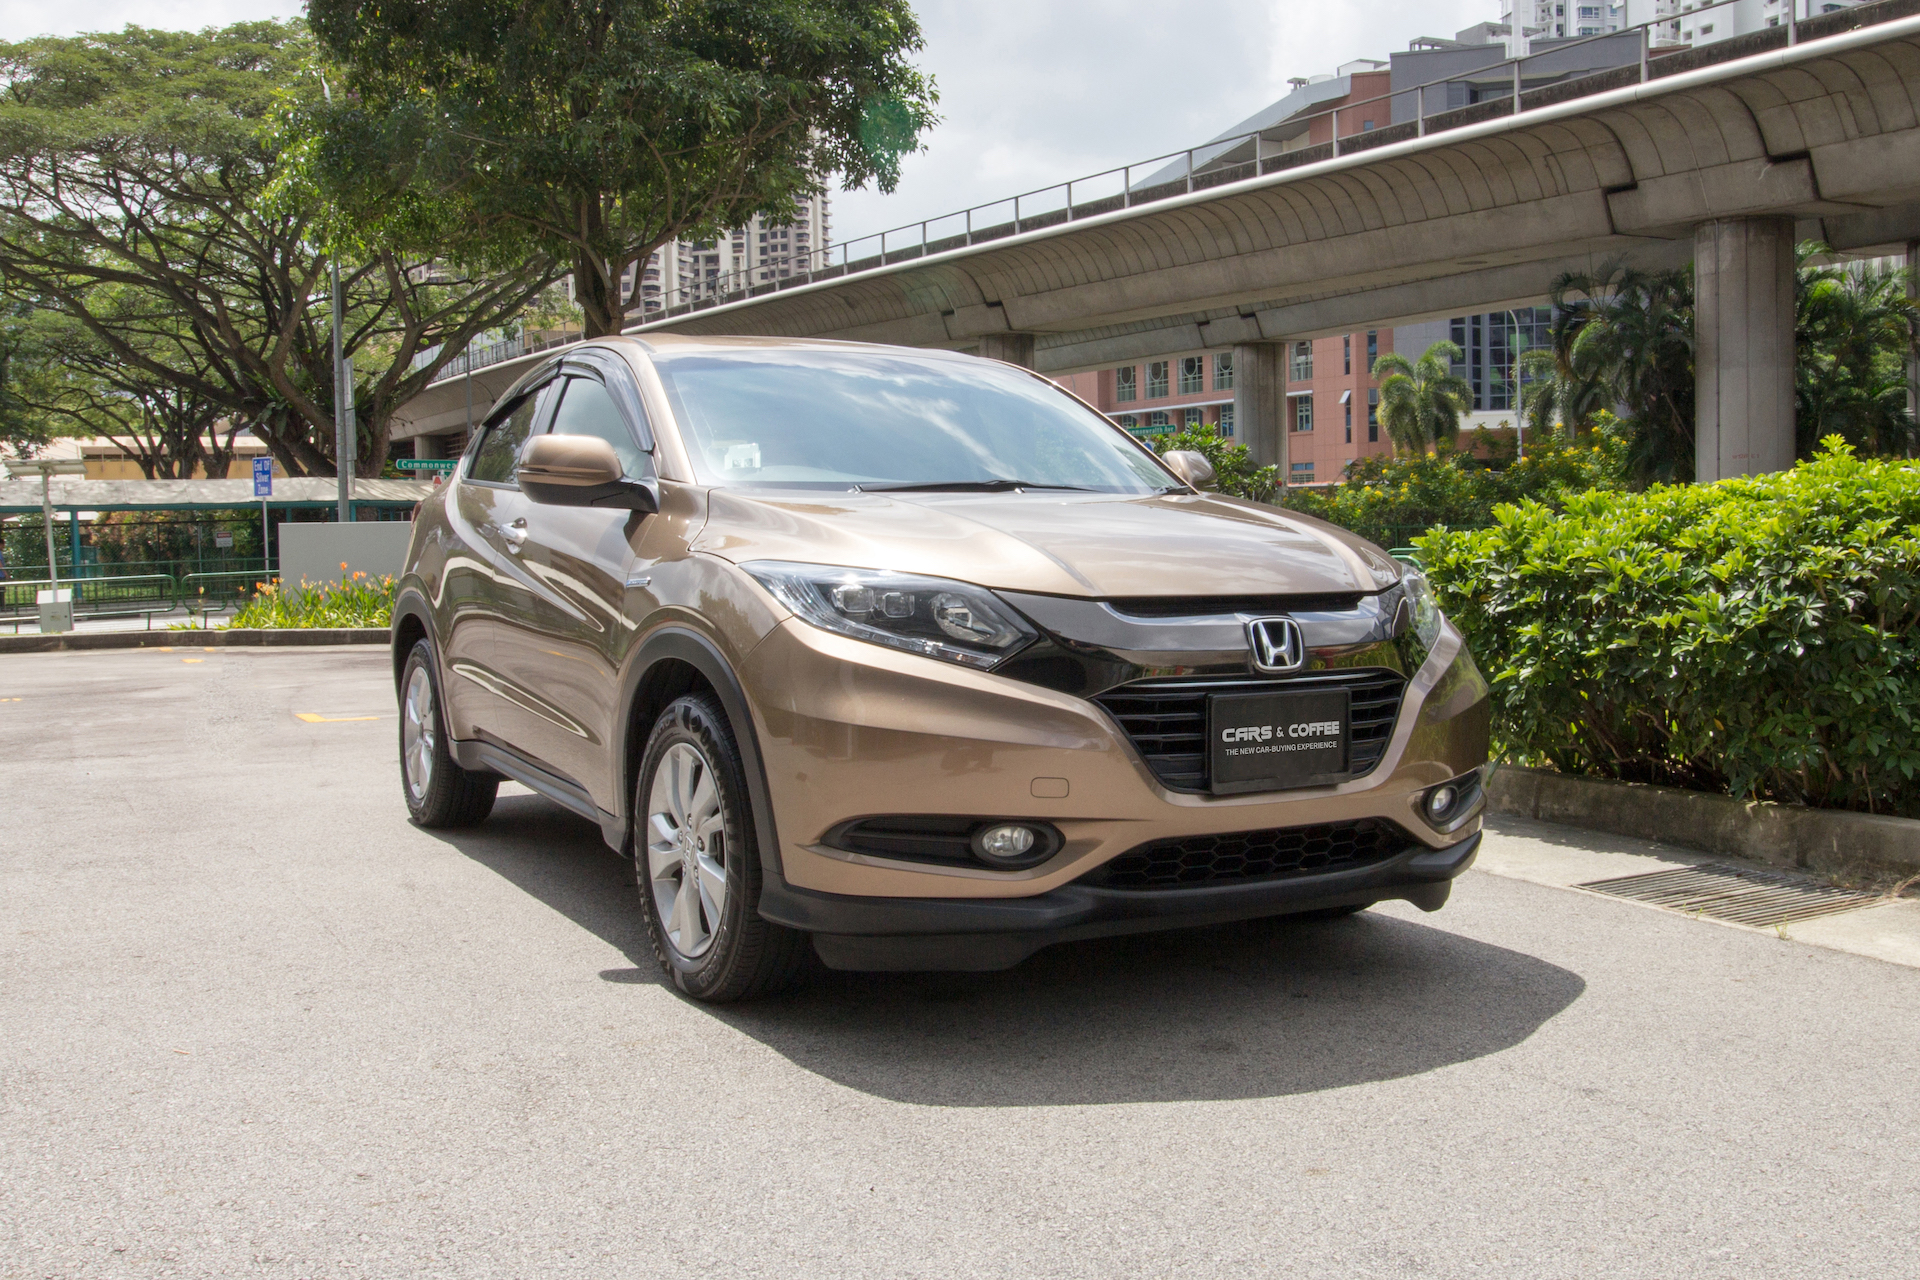 Certified Pre-Owned Honda Vezel Hybrid 1.5A X | Cars and Coffee Singapore